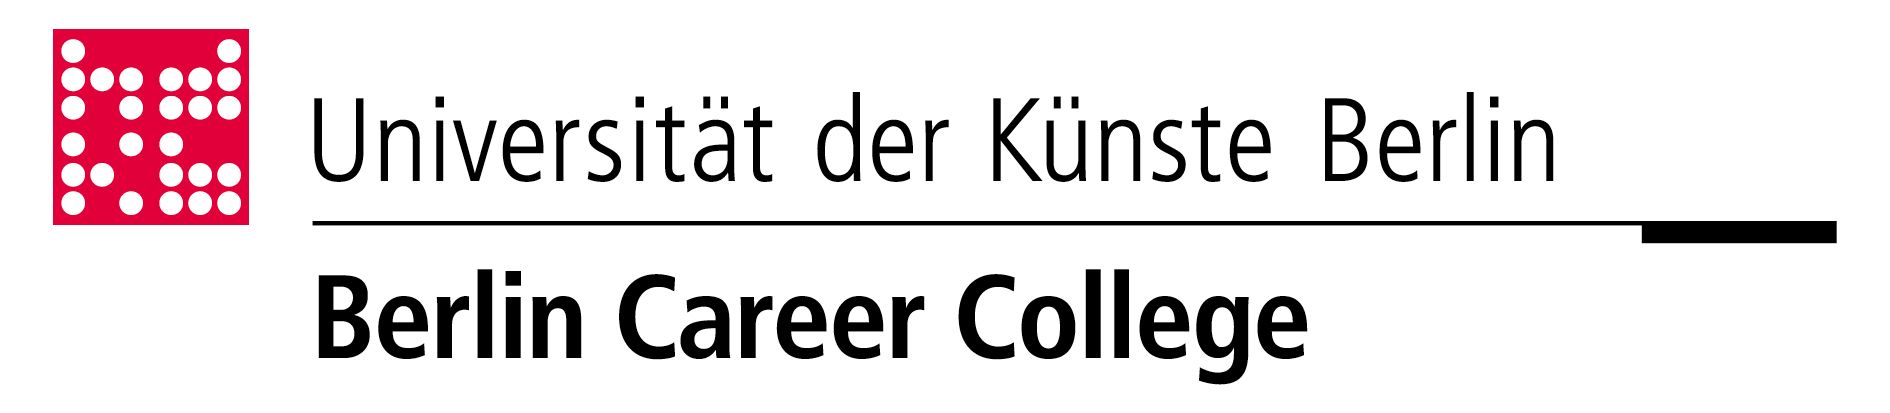 Universität der Künste Berlin | Berlin Career College